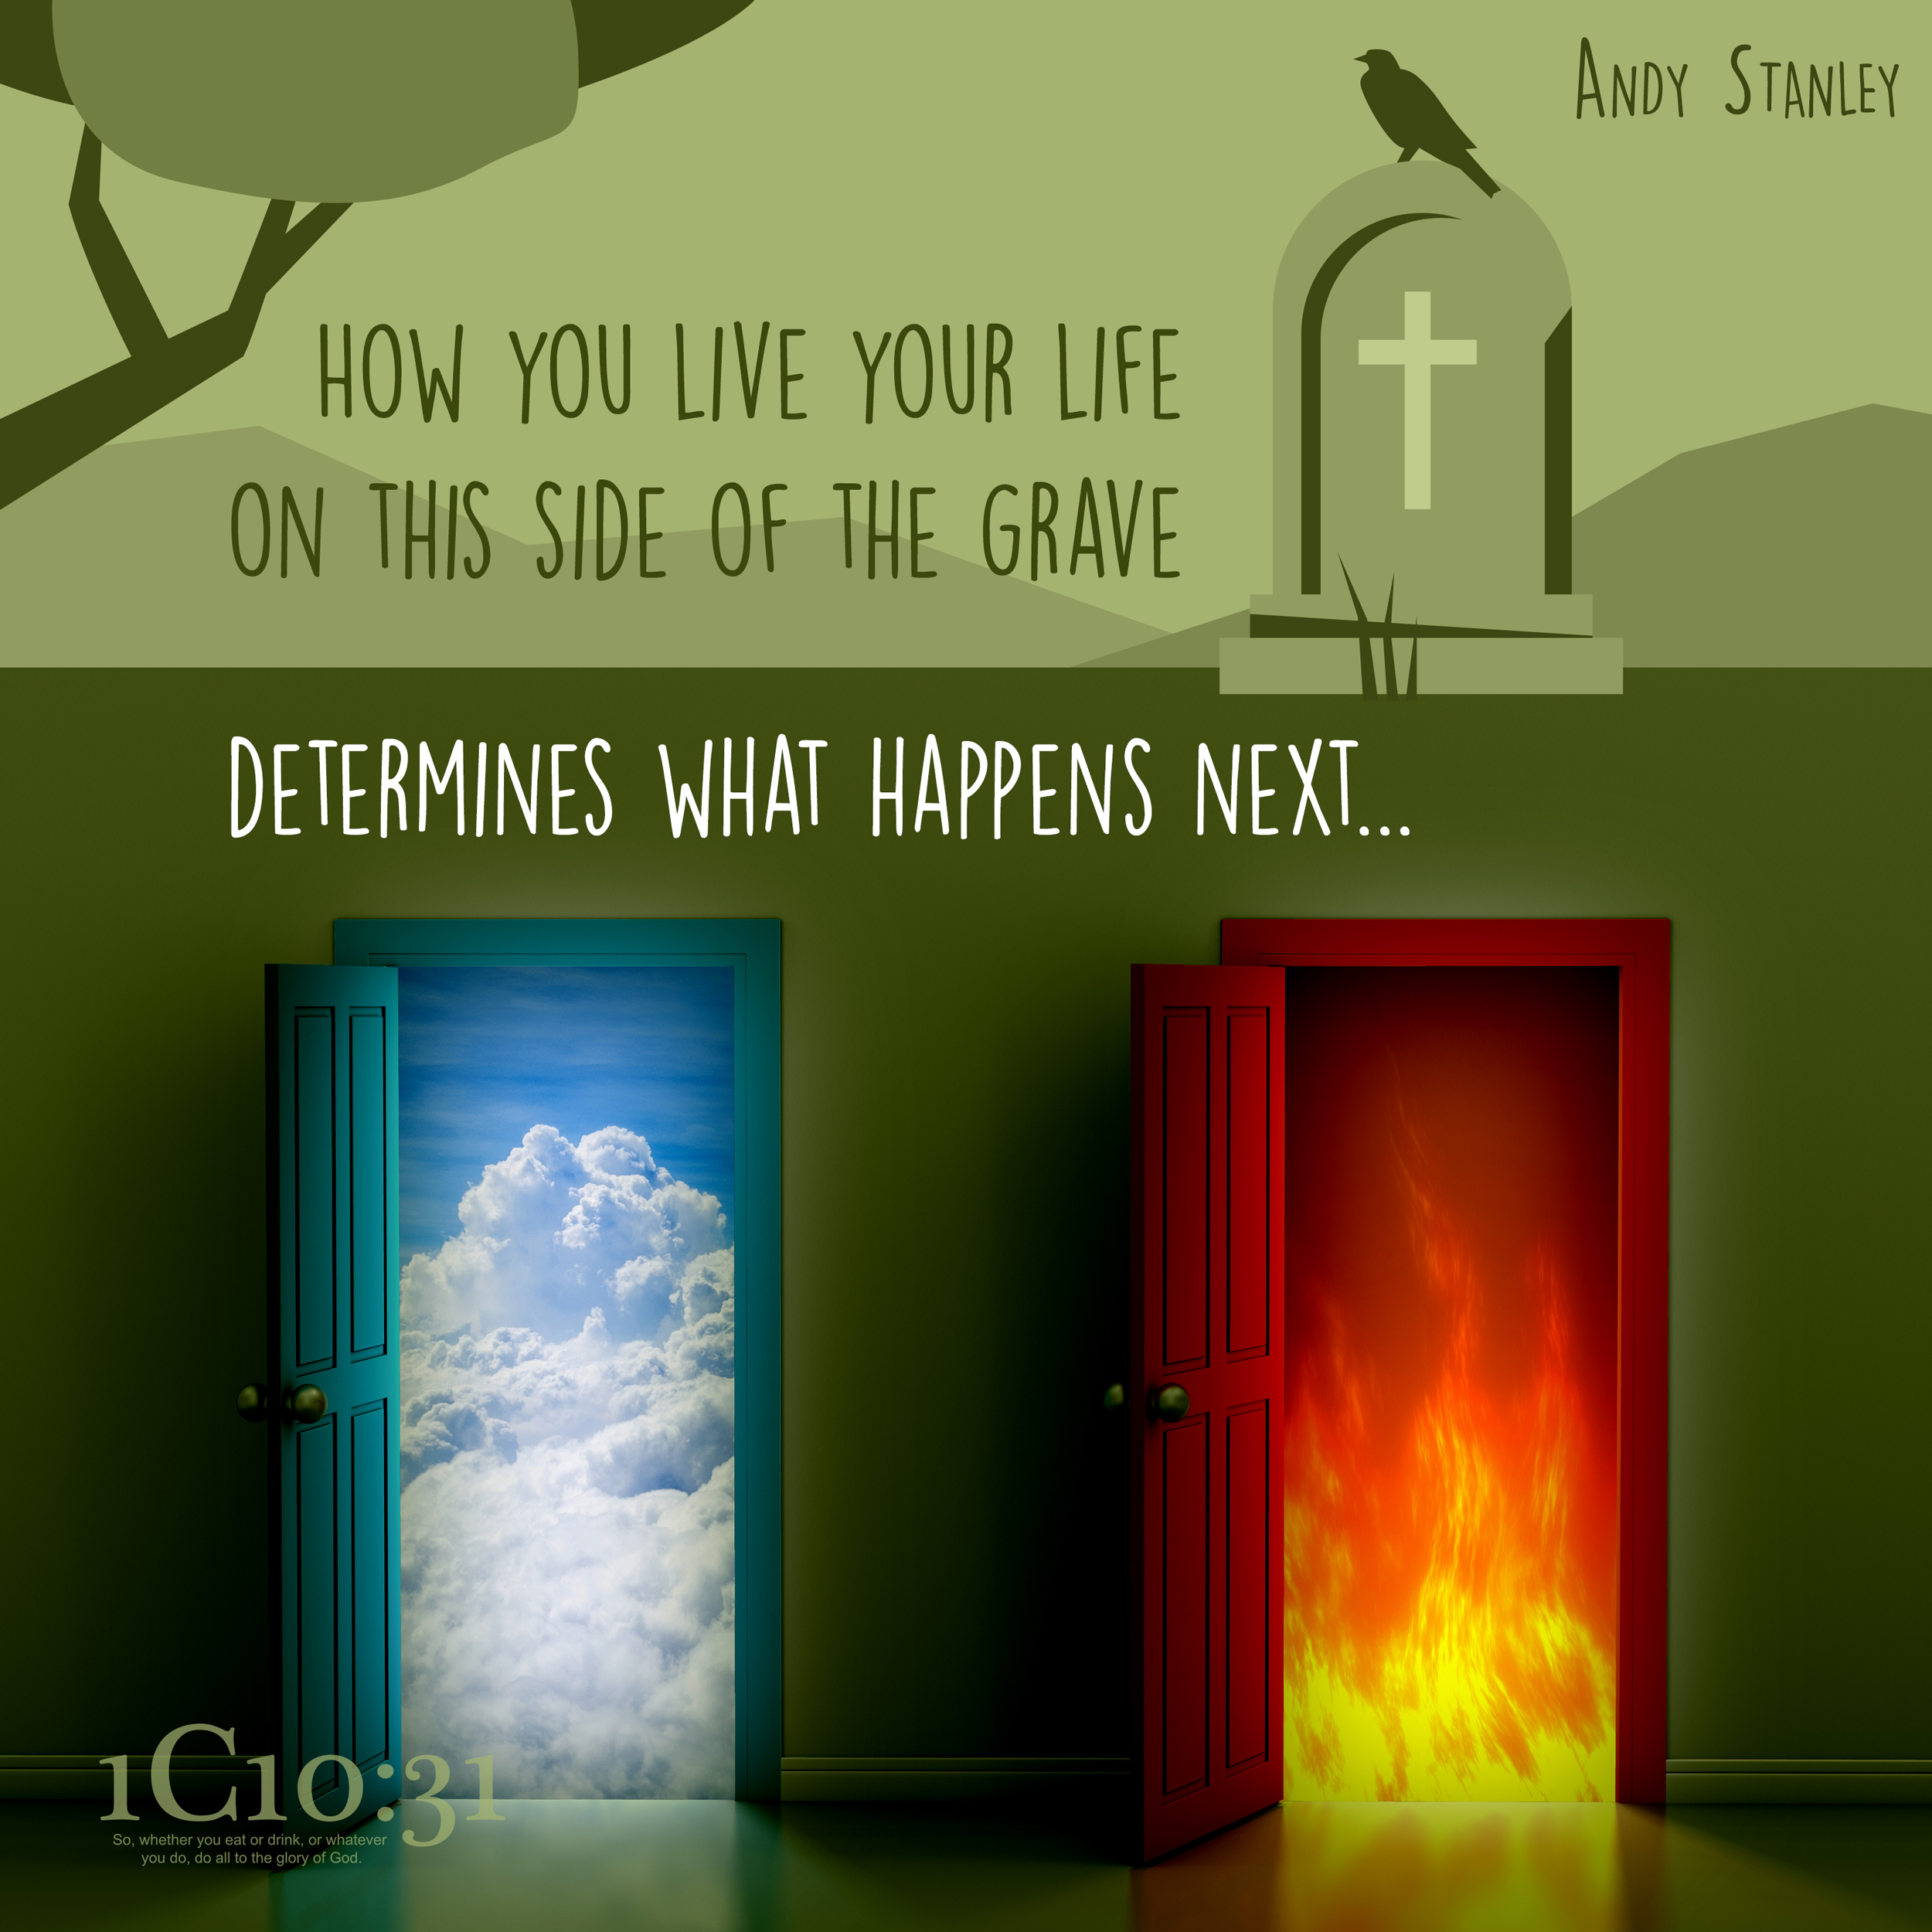 How you live your life on this side of the grave determines what happens next